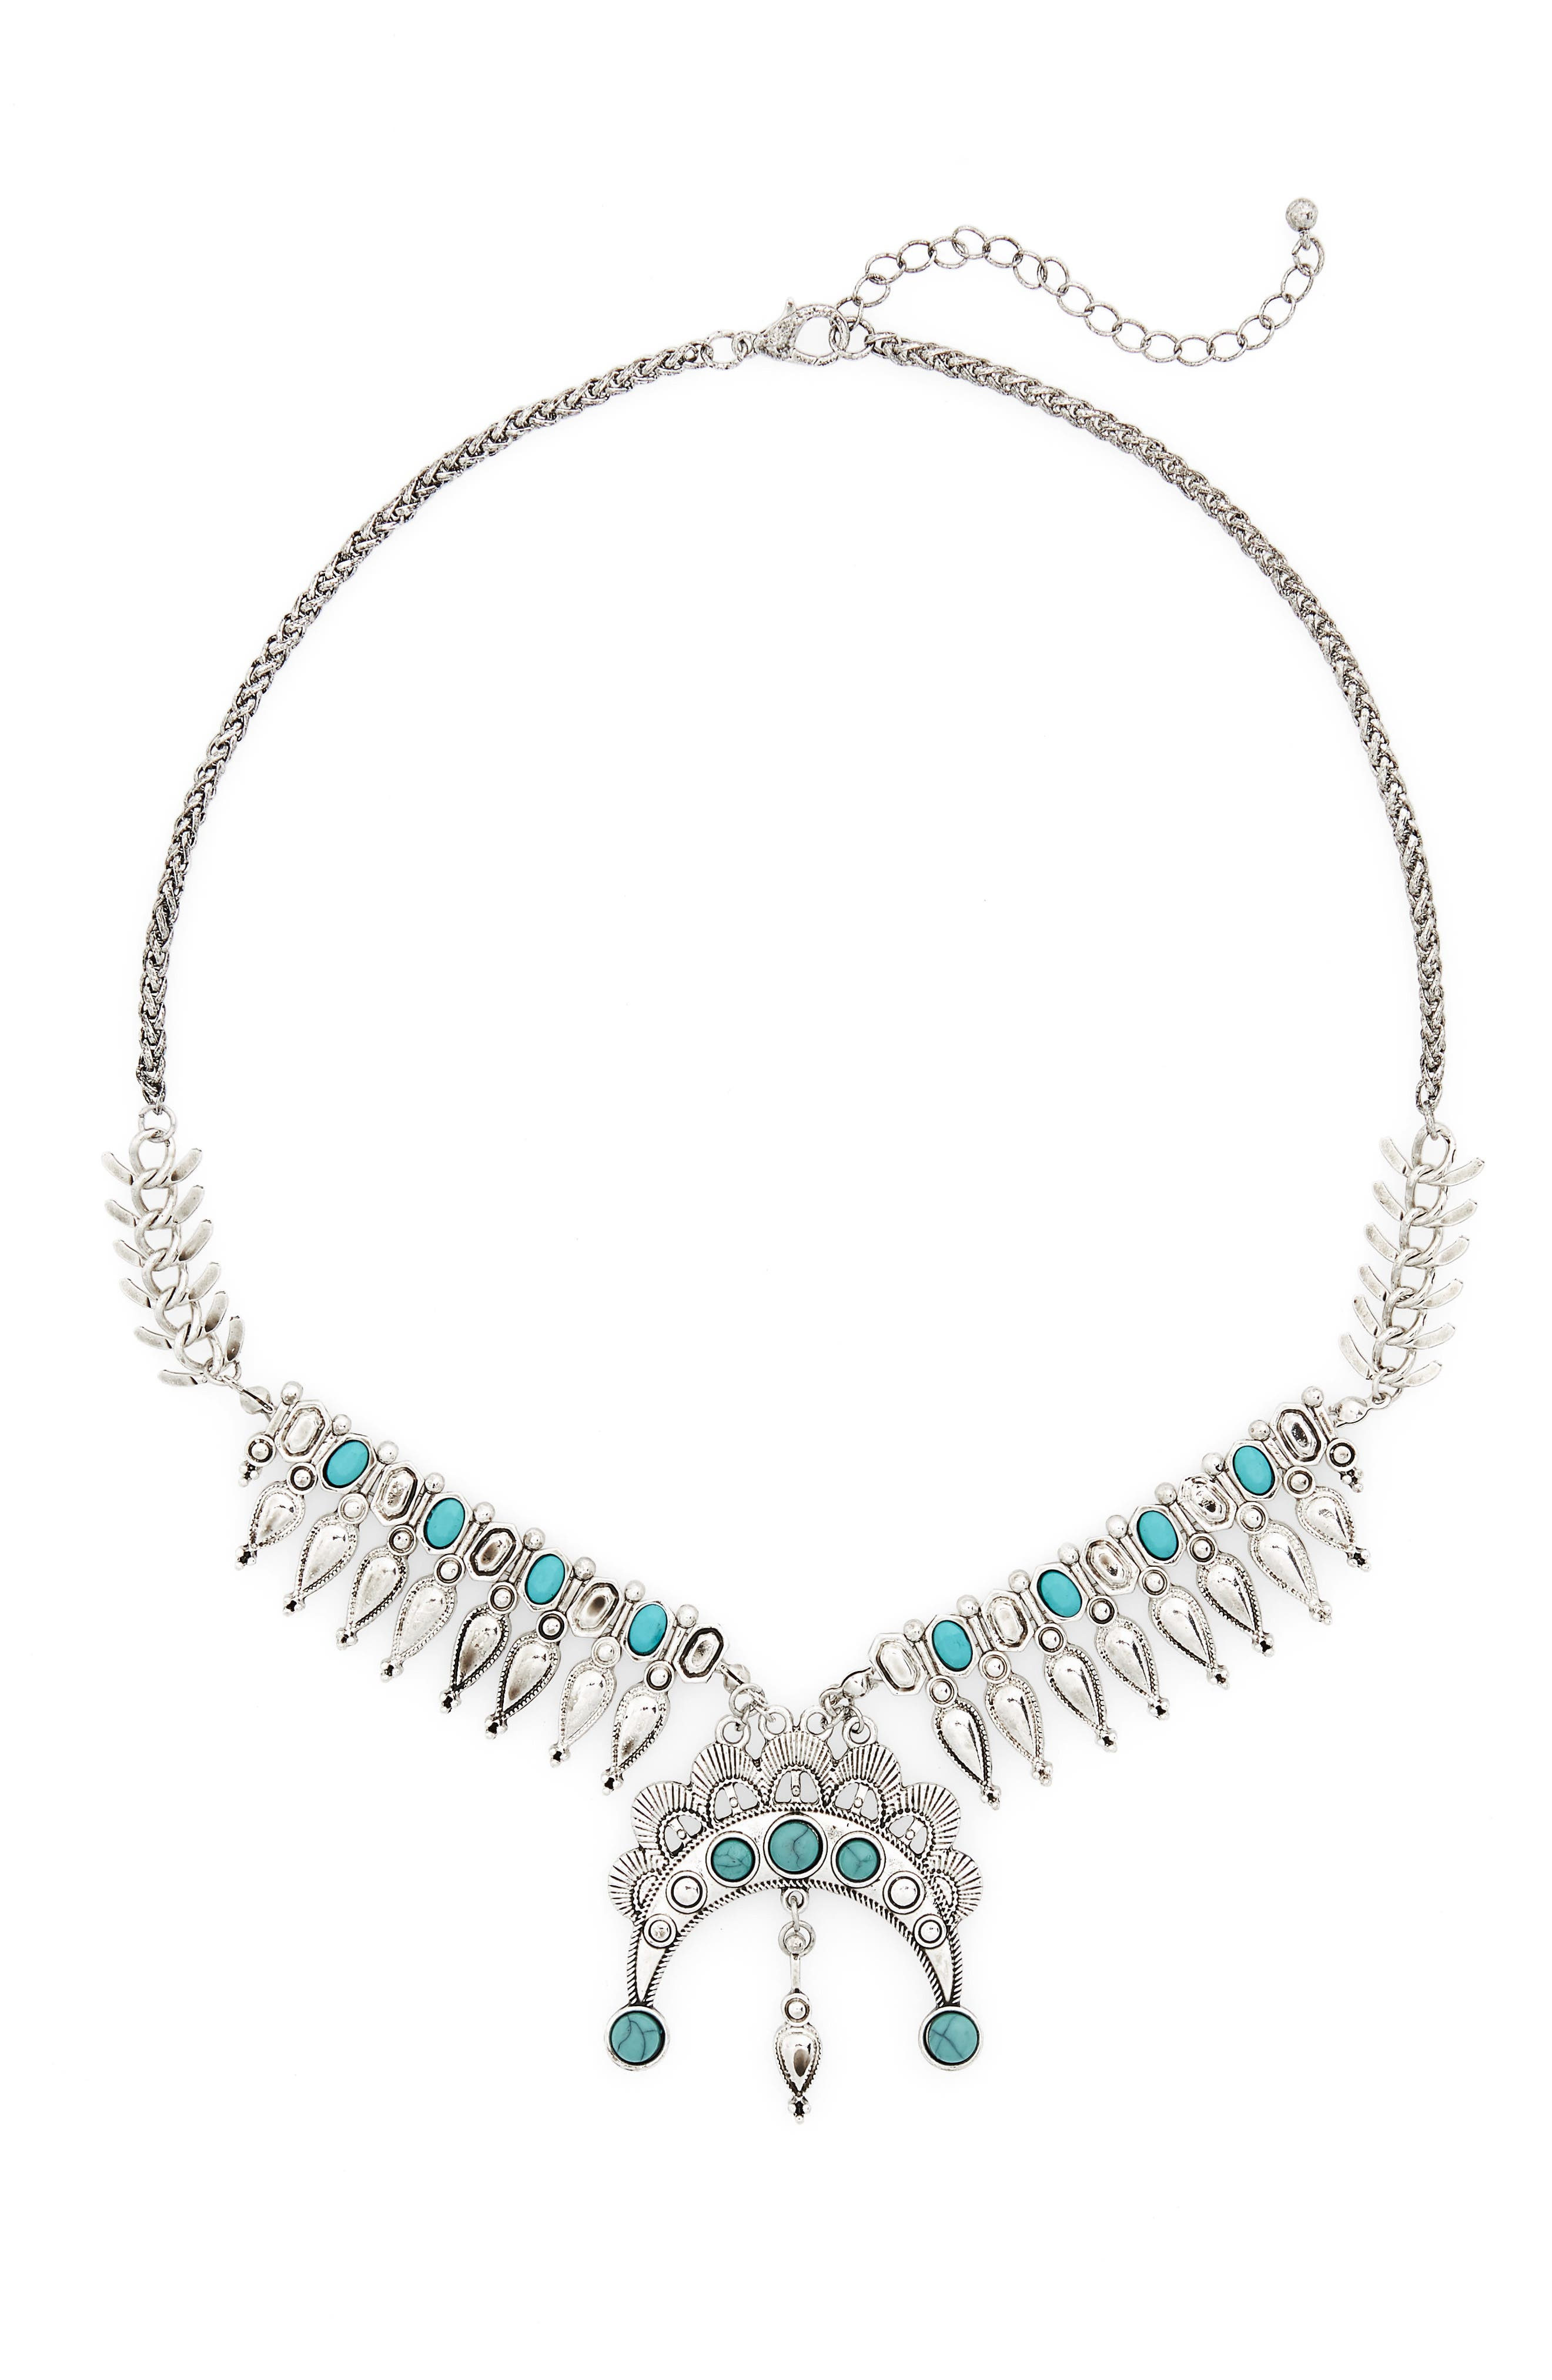 Western Crescent Statement Necklace,                         Main,                         color, Silver/ Turquoise